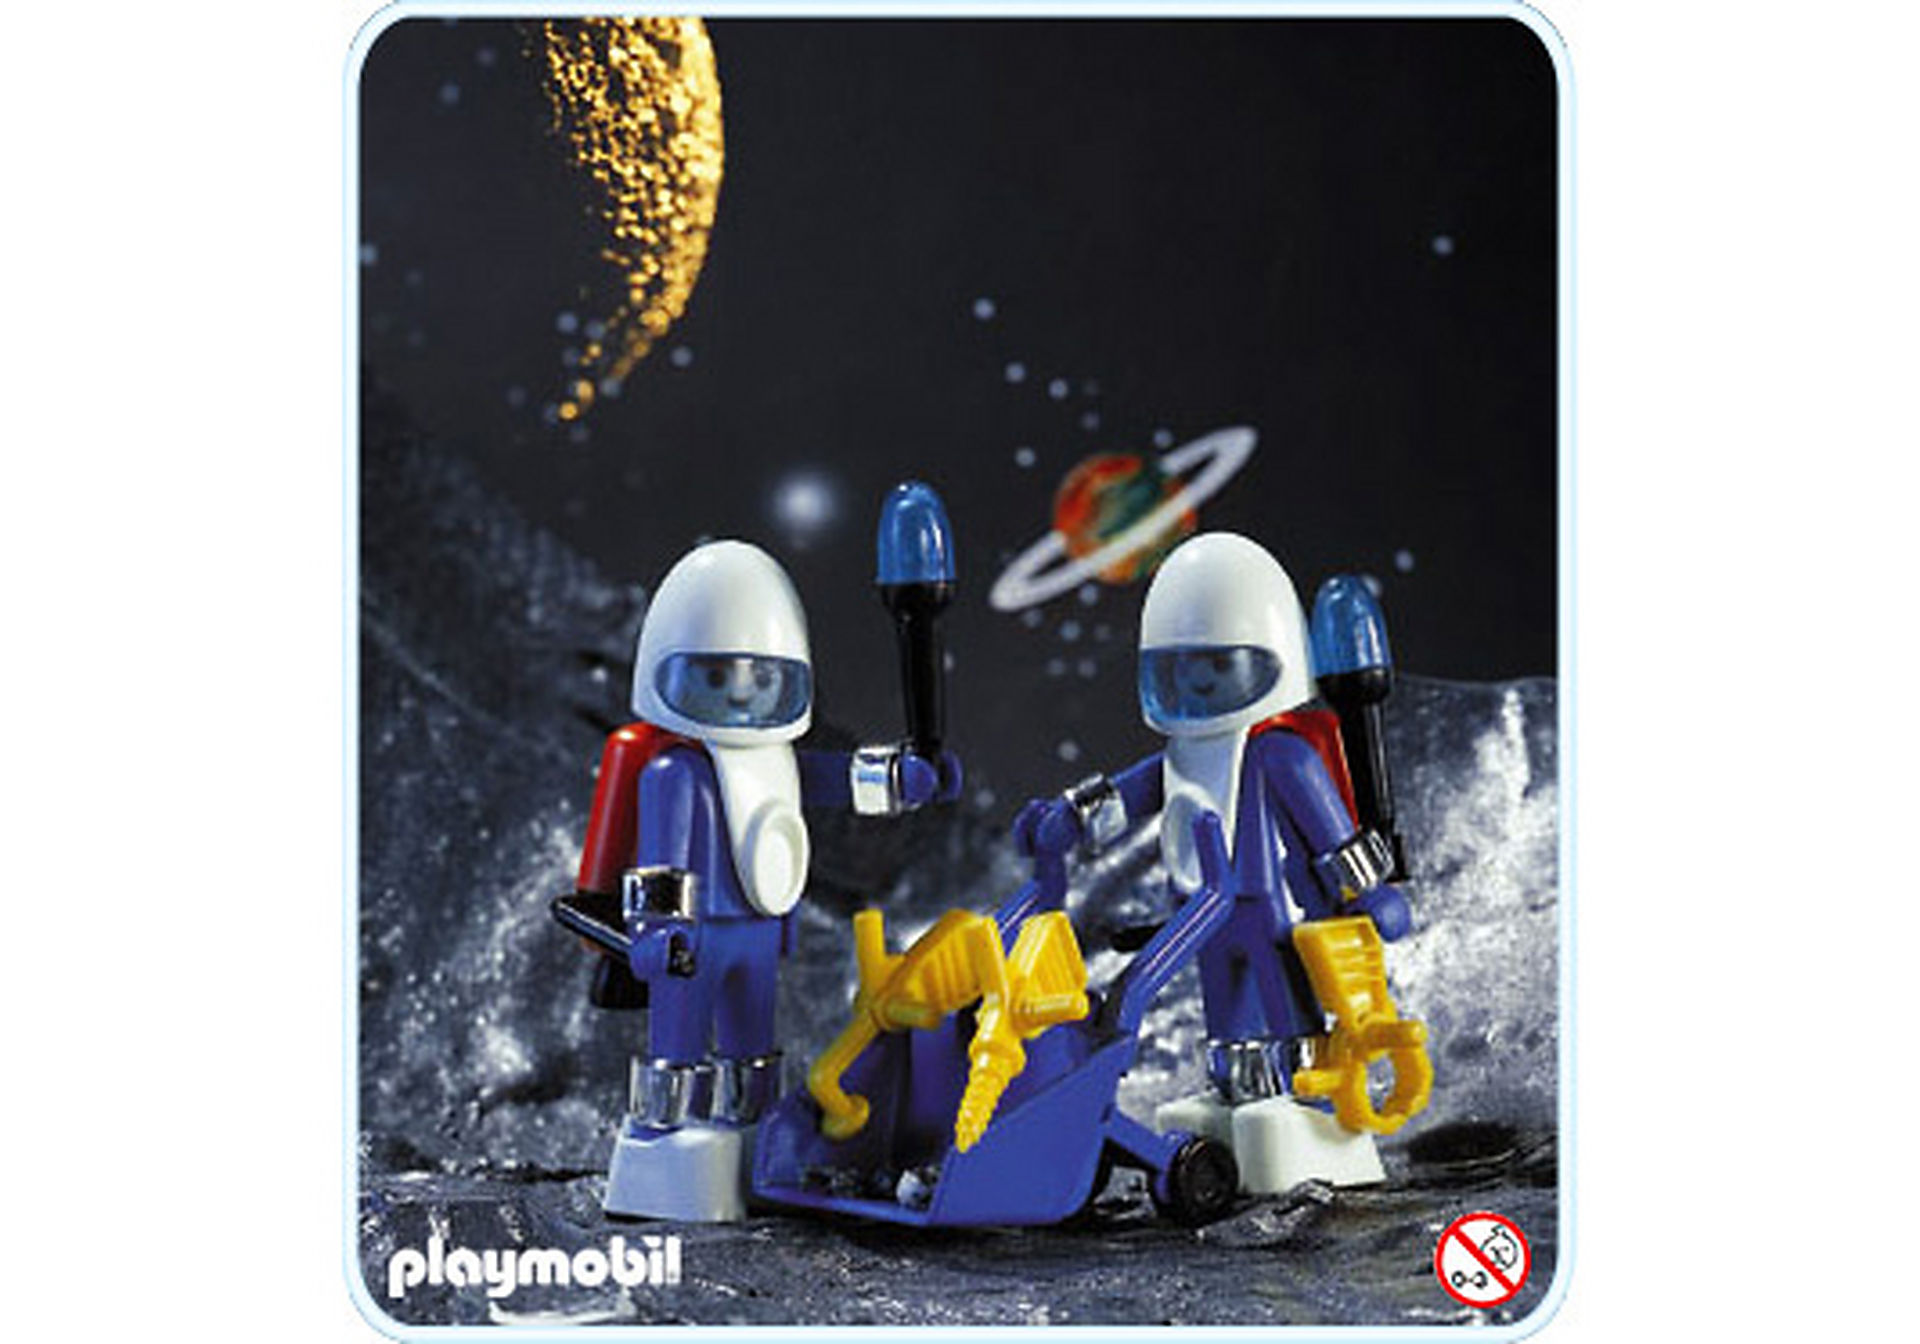 http://media.playmobil.com/i/playmobil/3589-A_product_detail/2 astronautes/charr.